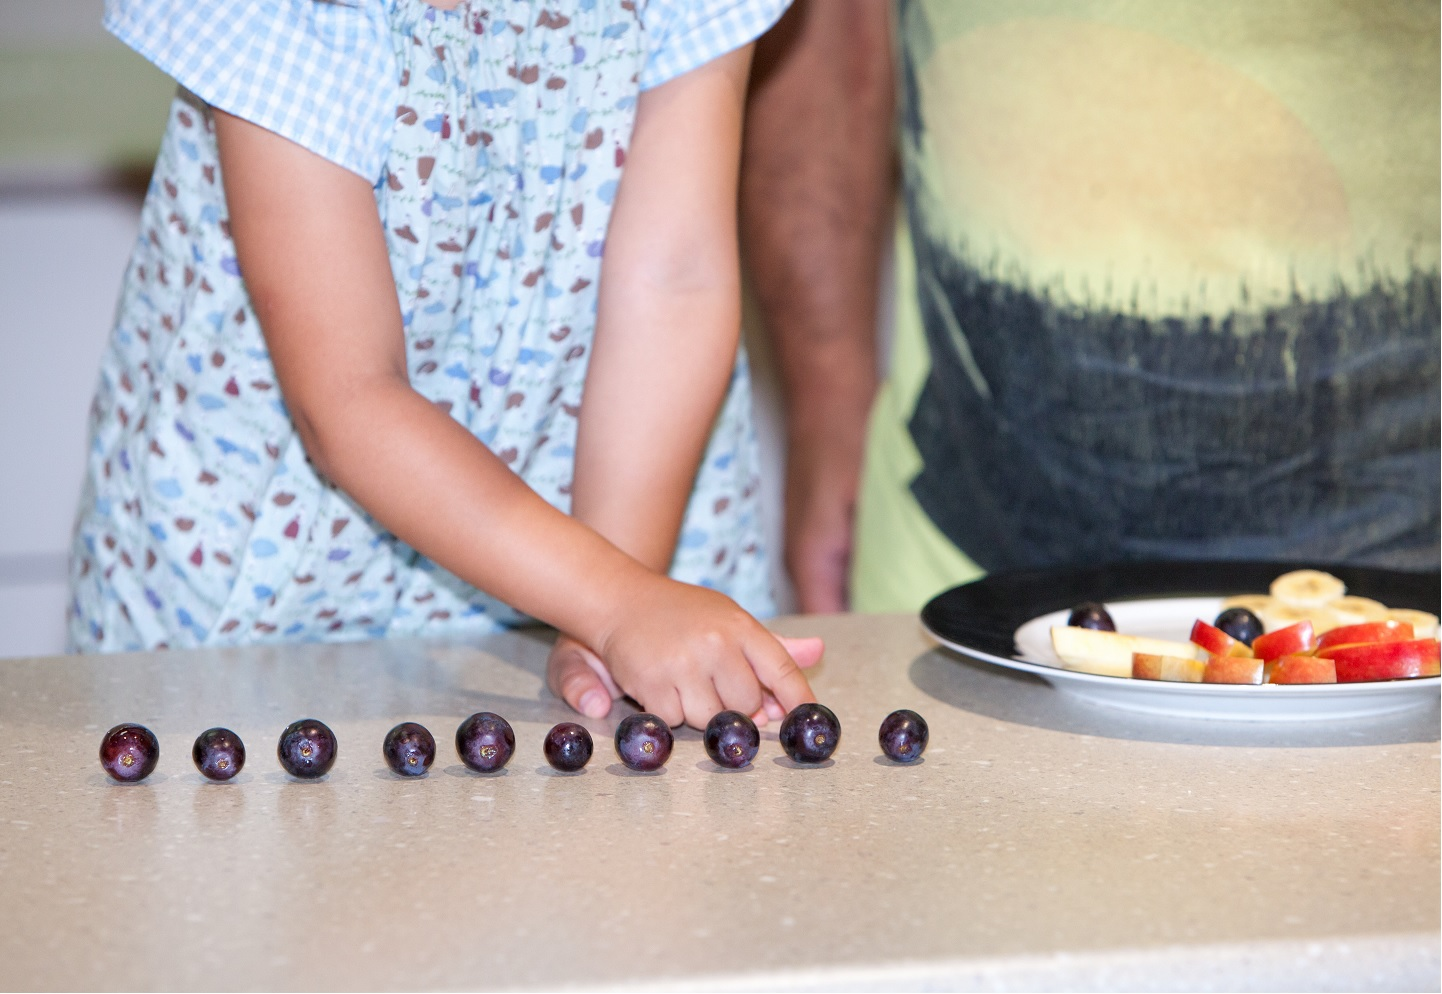 Daughter and her dad use fruit such as grapes and apple slices to count